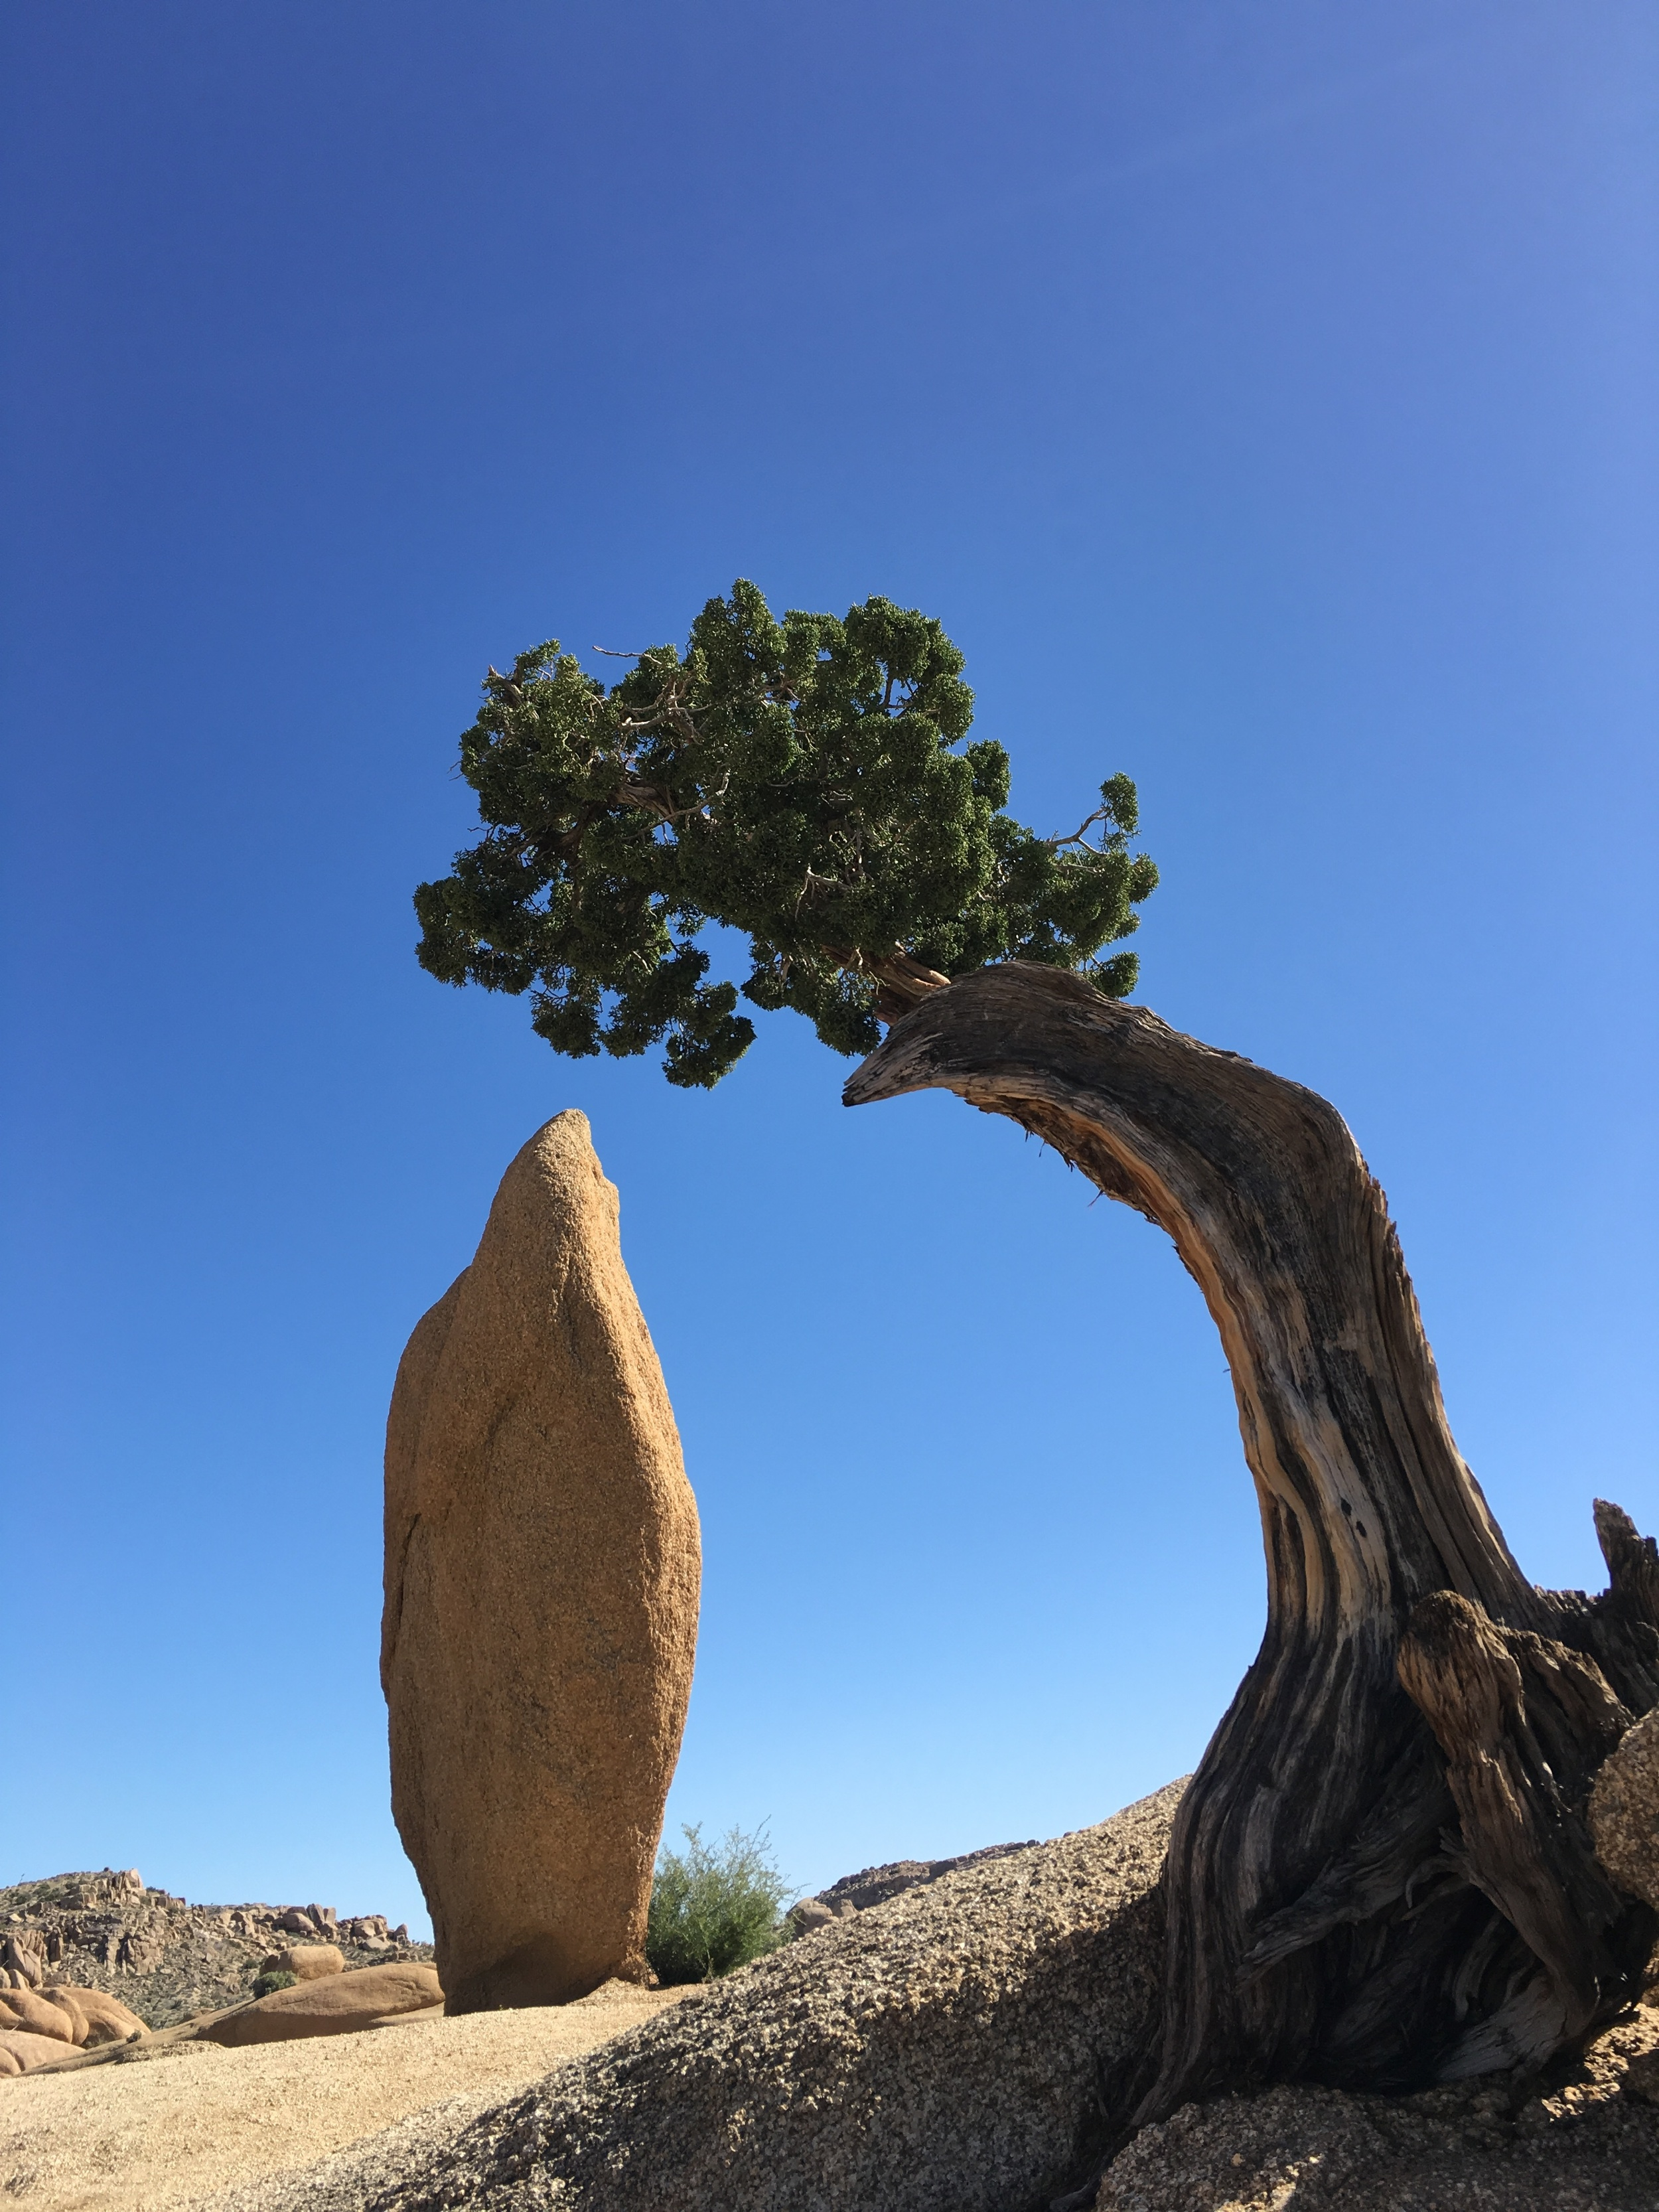 A perfect view from our campsite at Black Rock campground at Joshua Tree National Park in California.